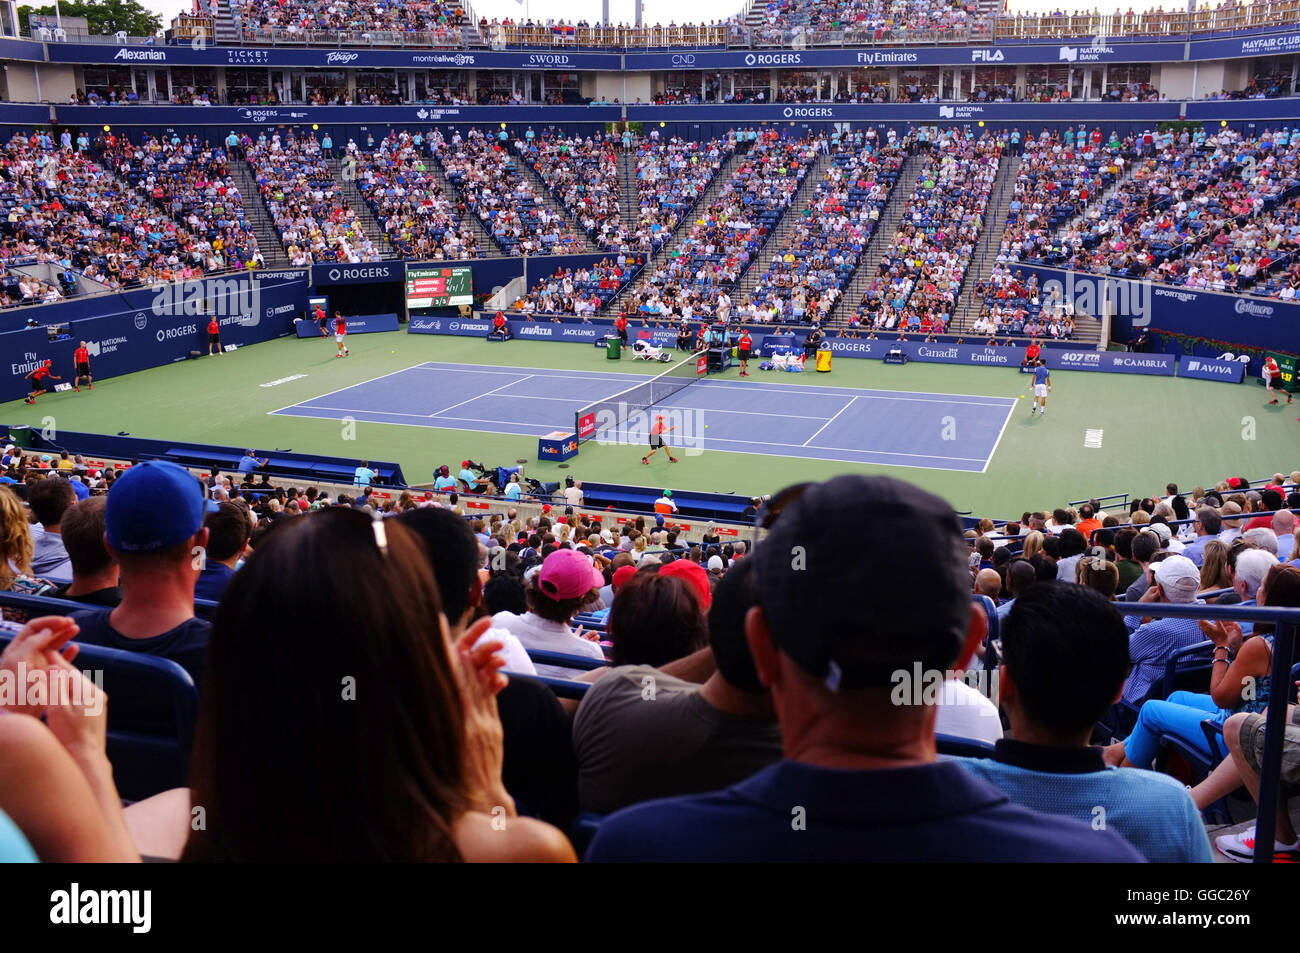 Tennis fans watching men play at the 2016 Rogers Cup qt the Aviva Centre in Toronto. - Stock Image